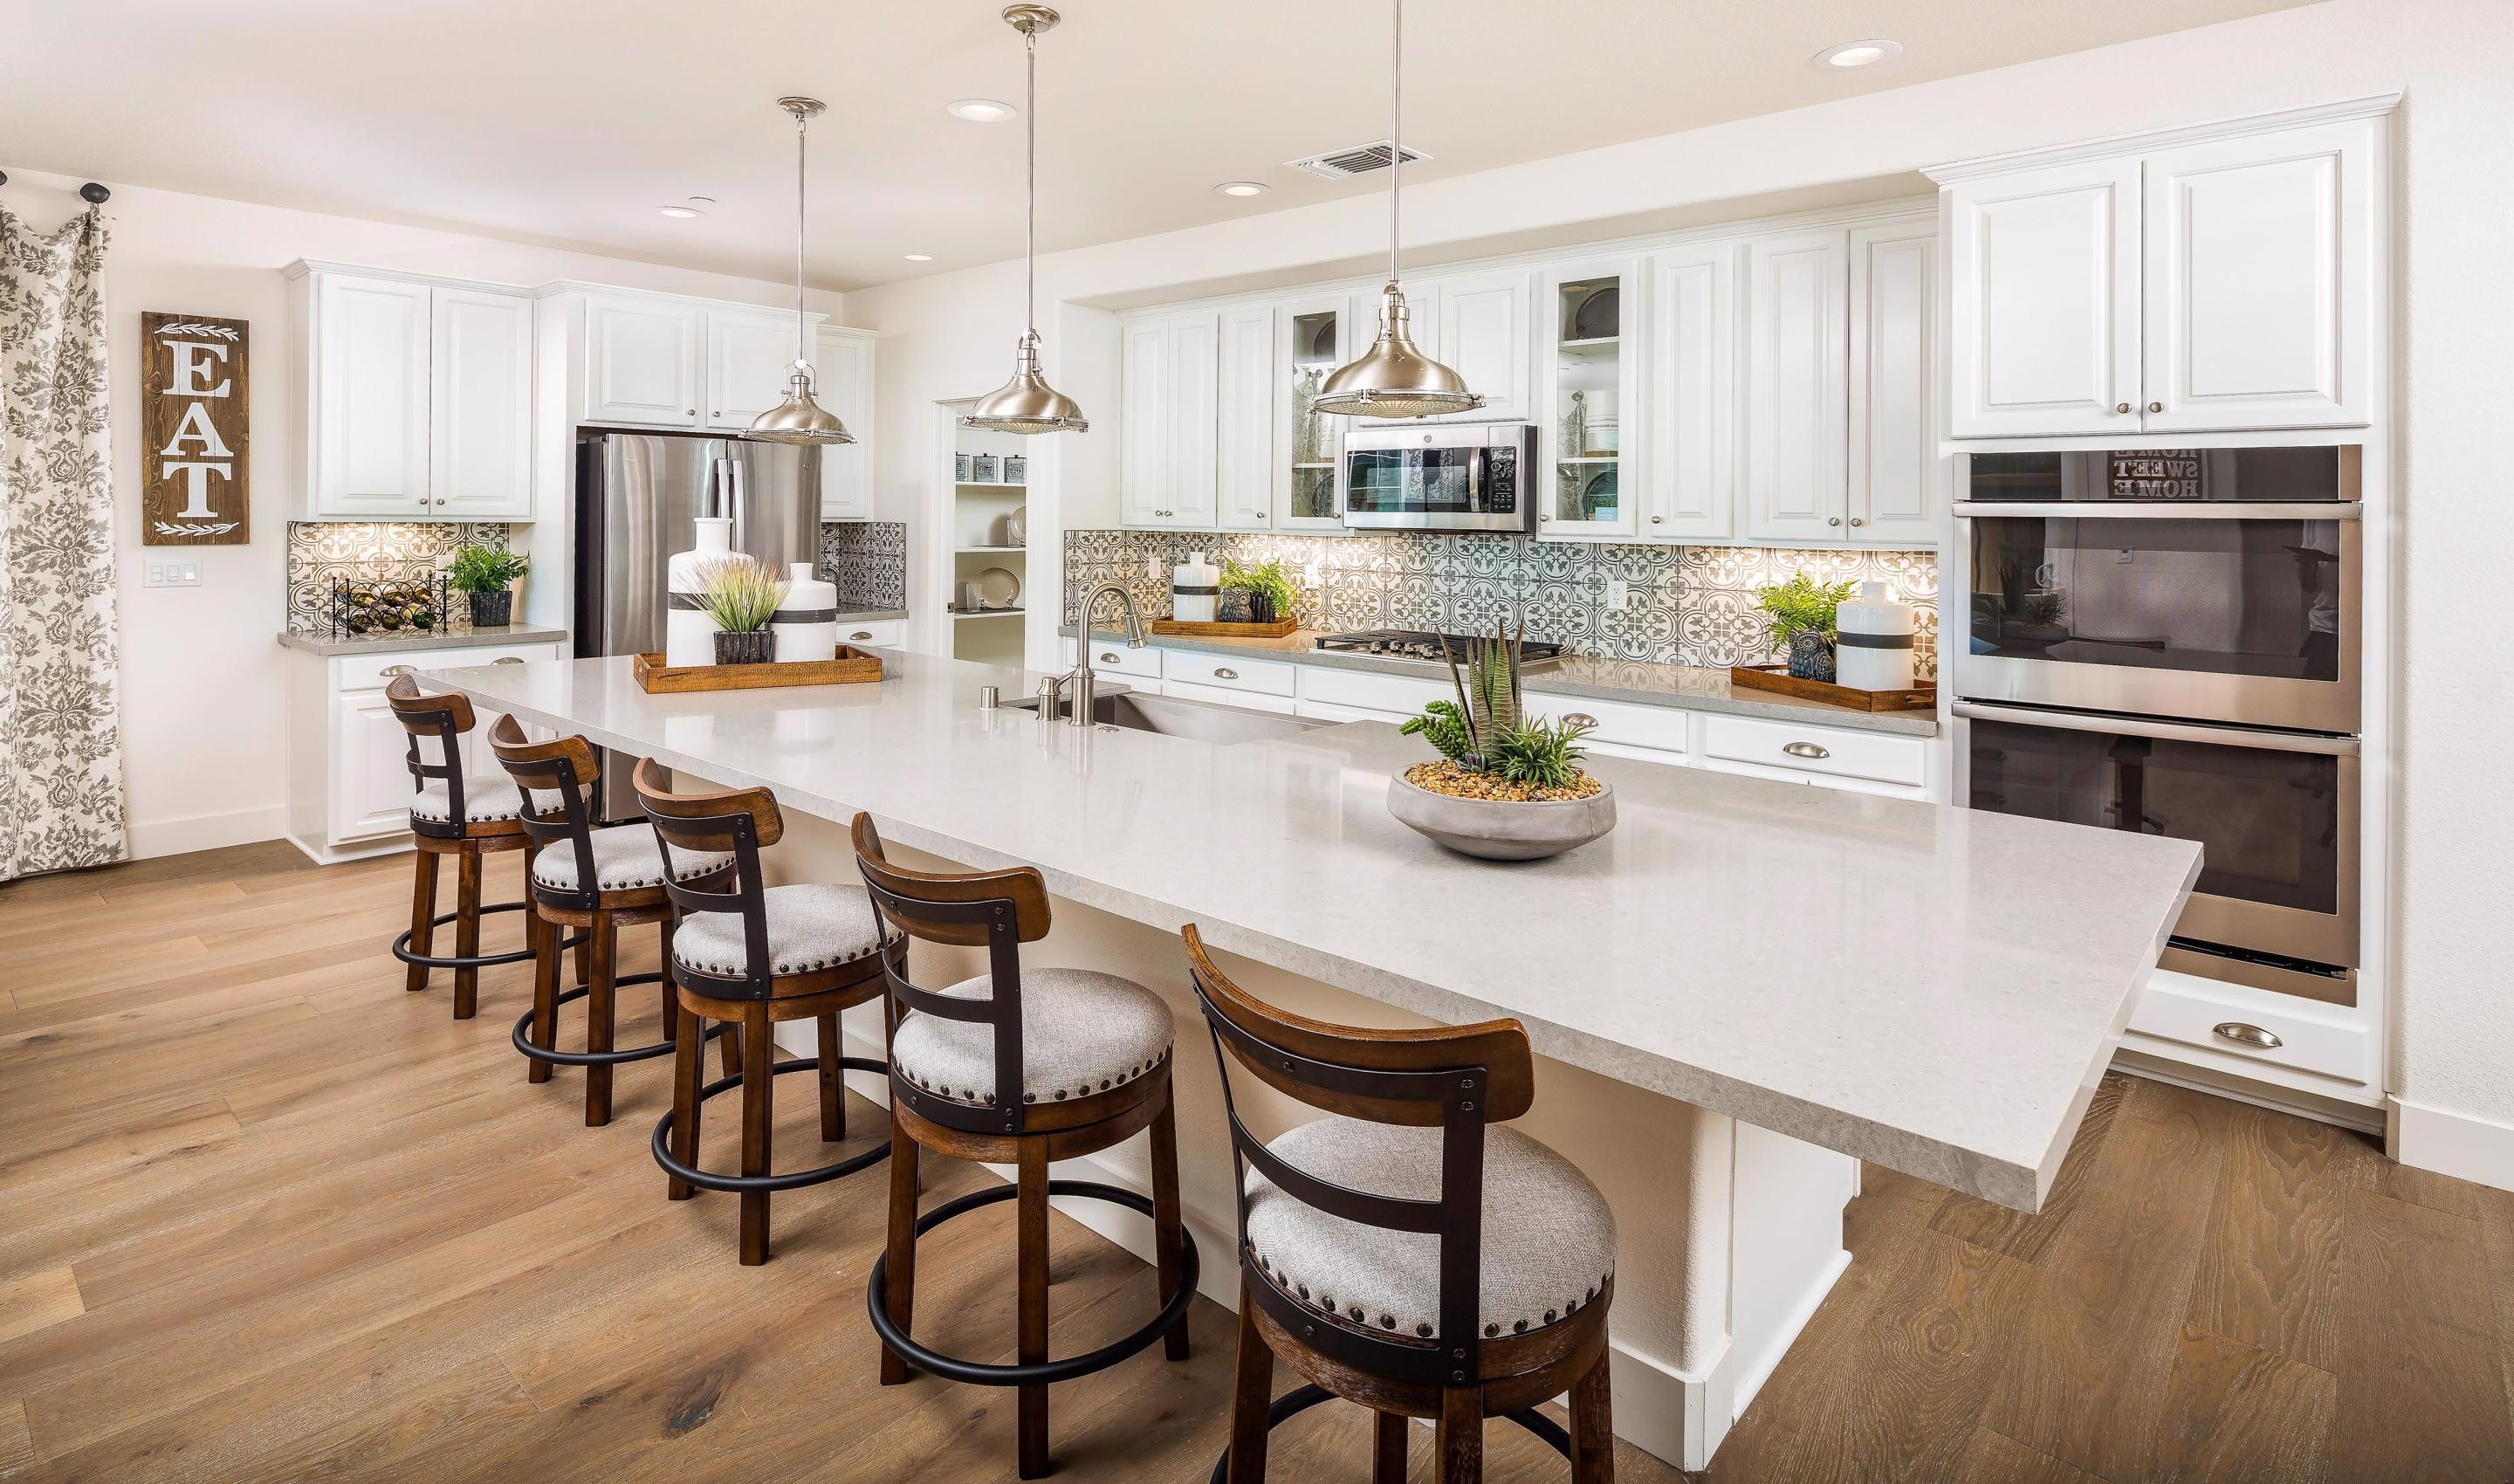 Kitchen featured in the Triumph By K. Hovnanian® Homes in Oakland-Alameda, CA